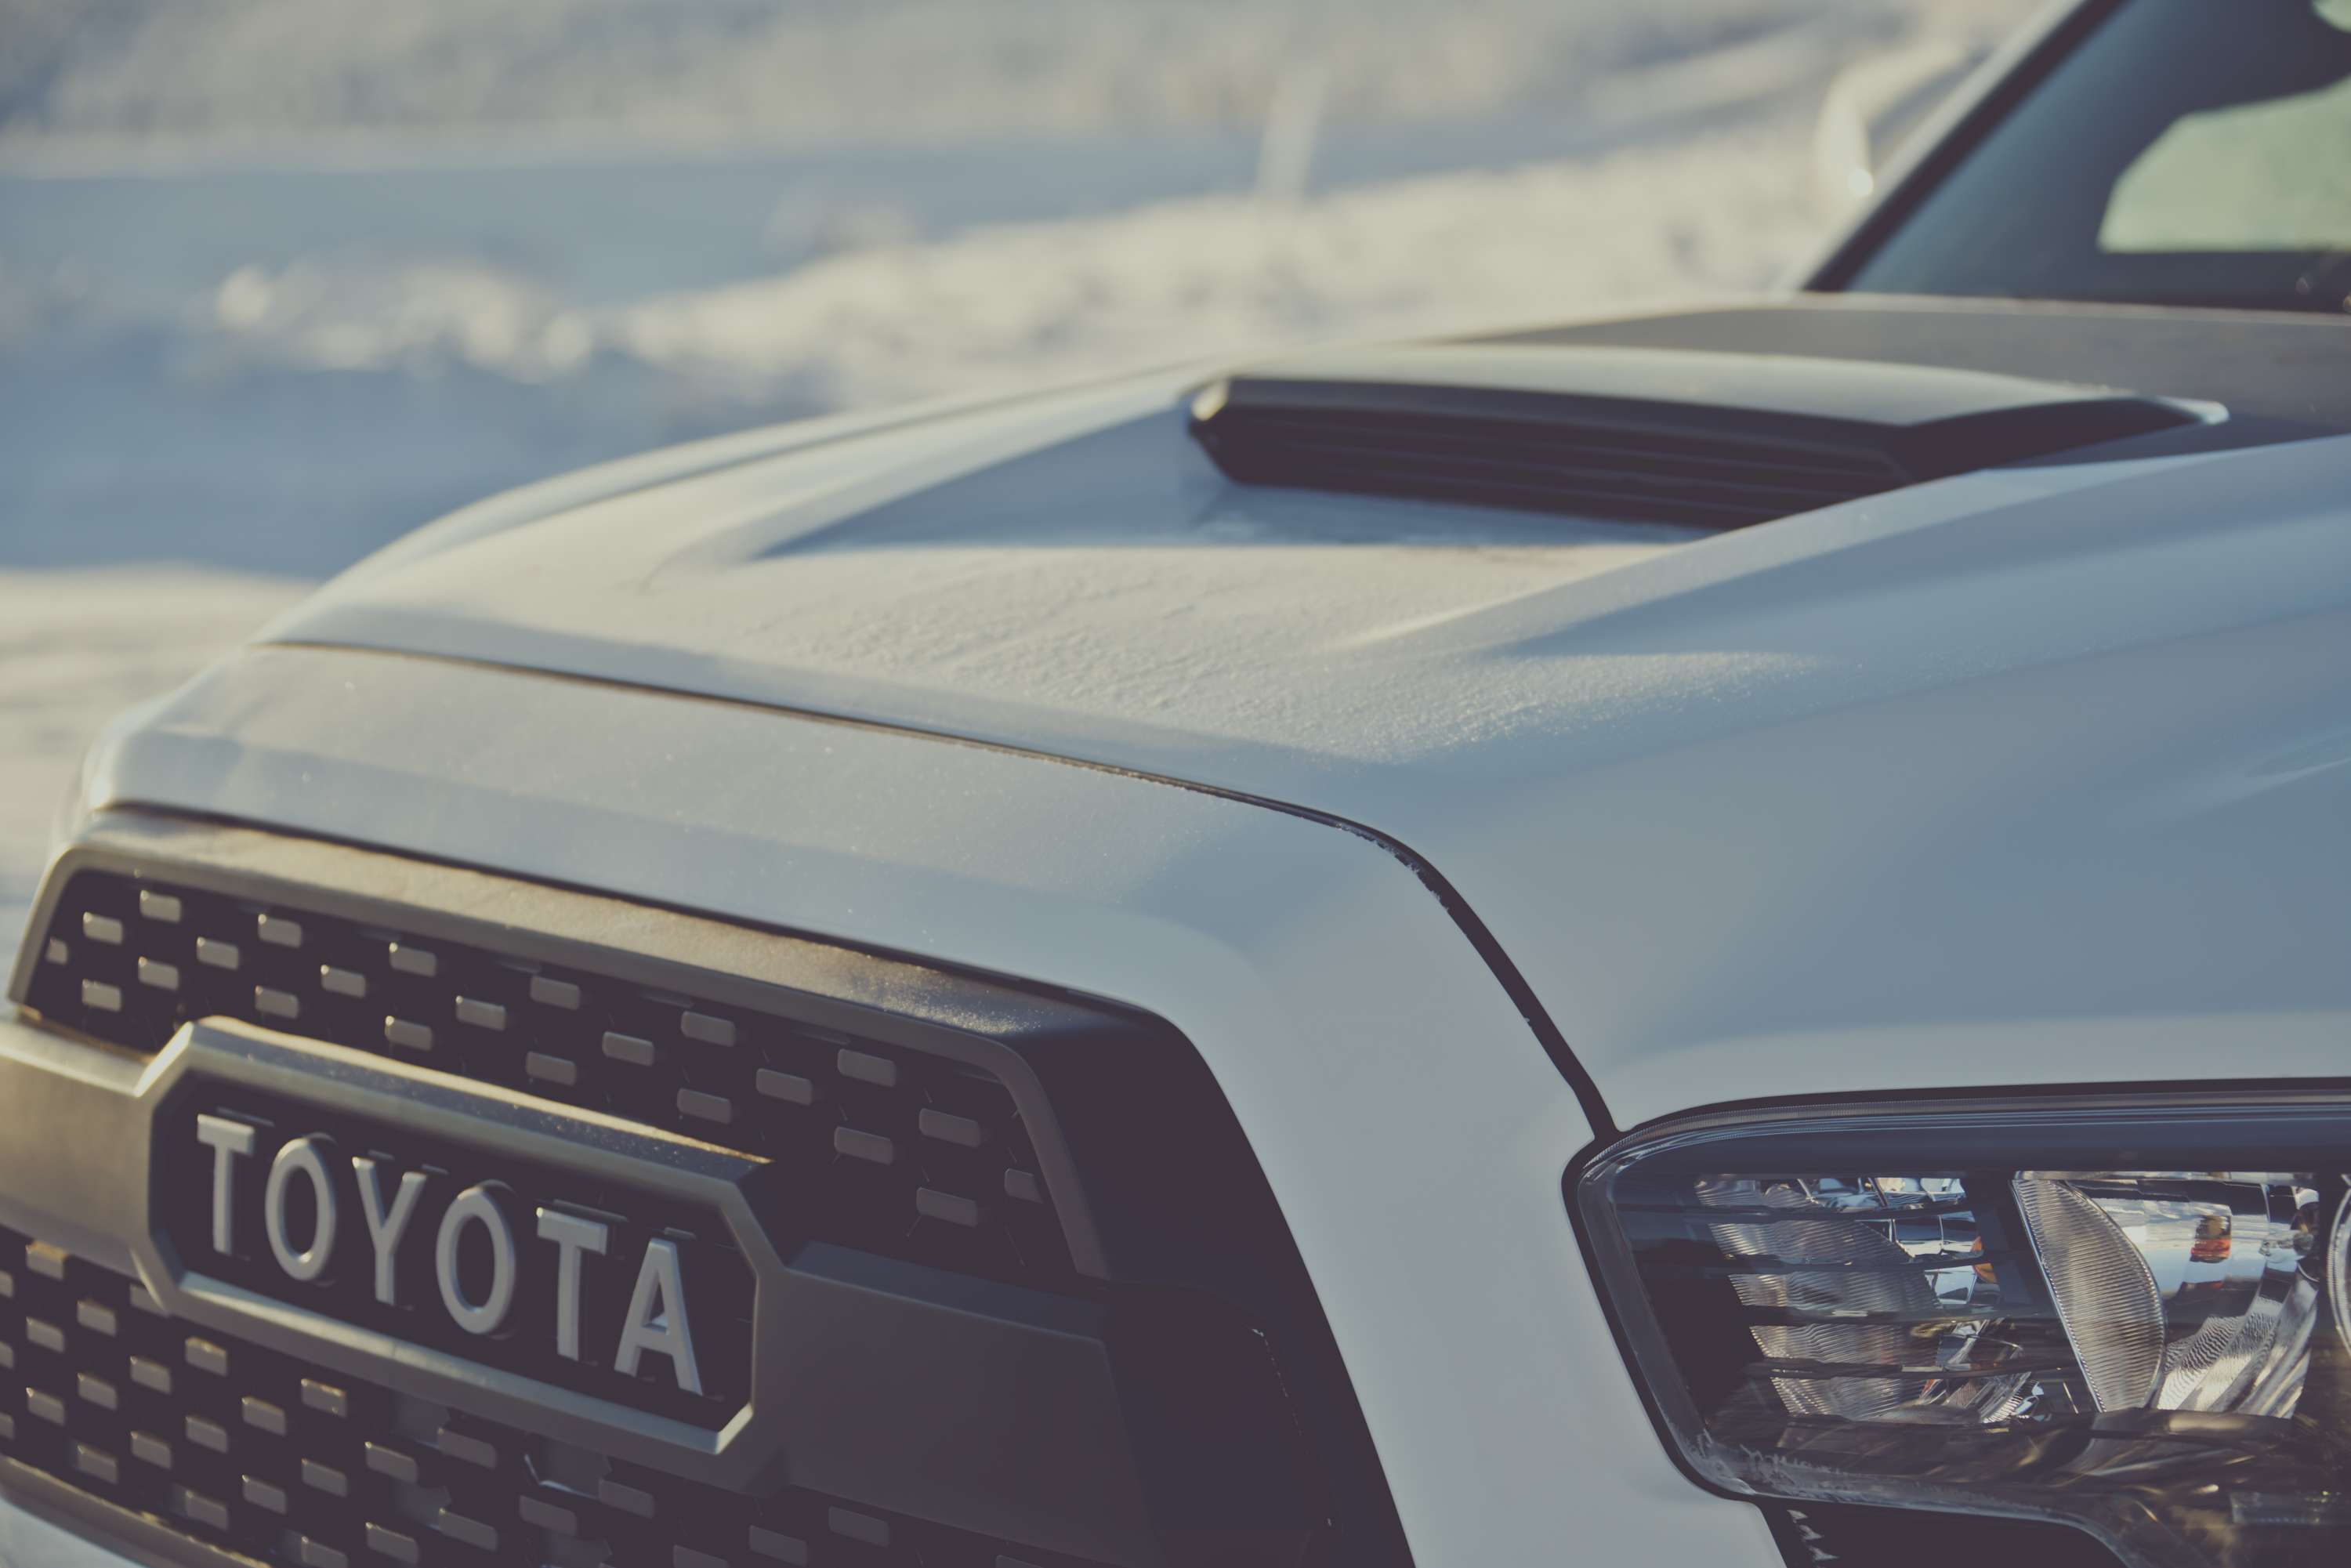 wallpapers tacoma net toyota pro carswall trd wallpaper index group